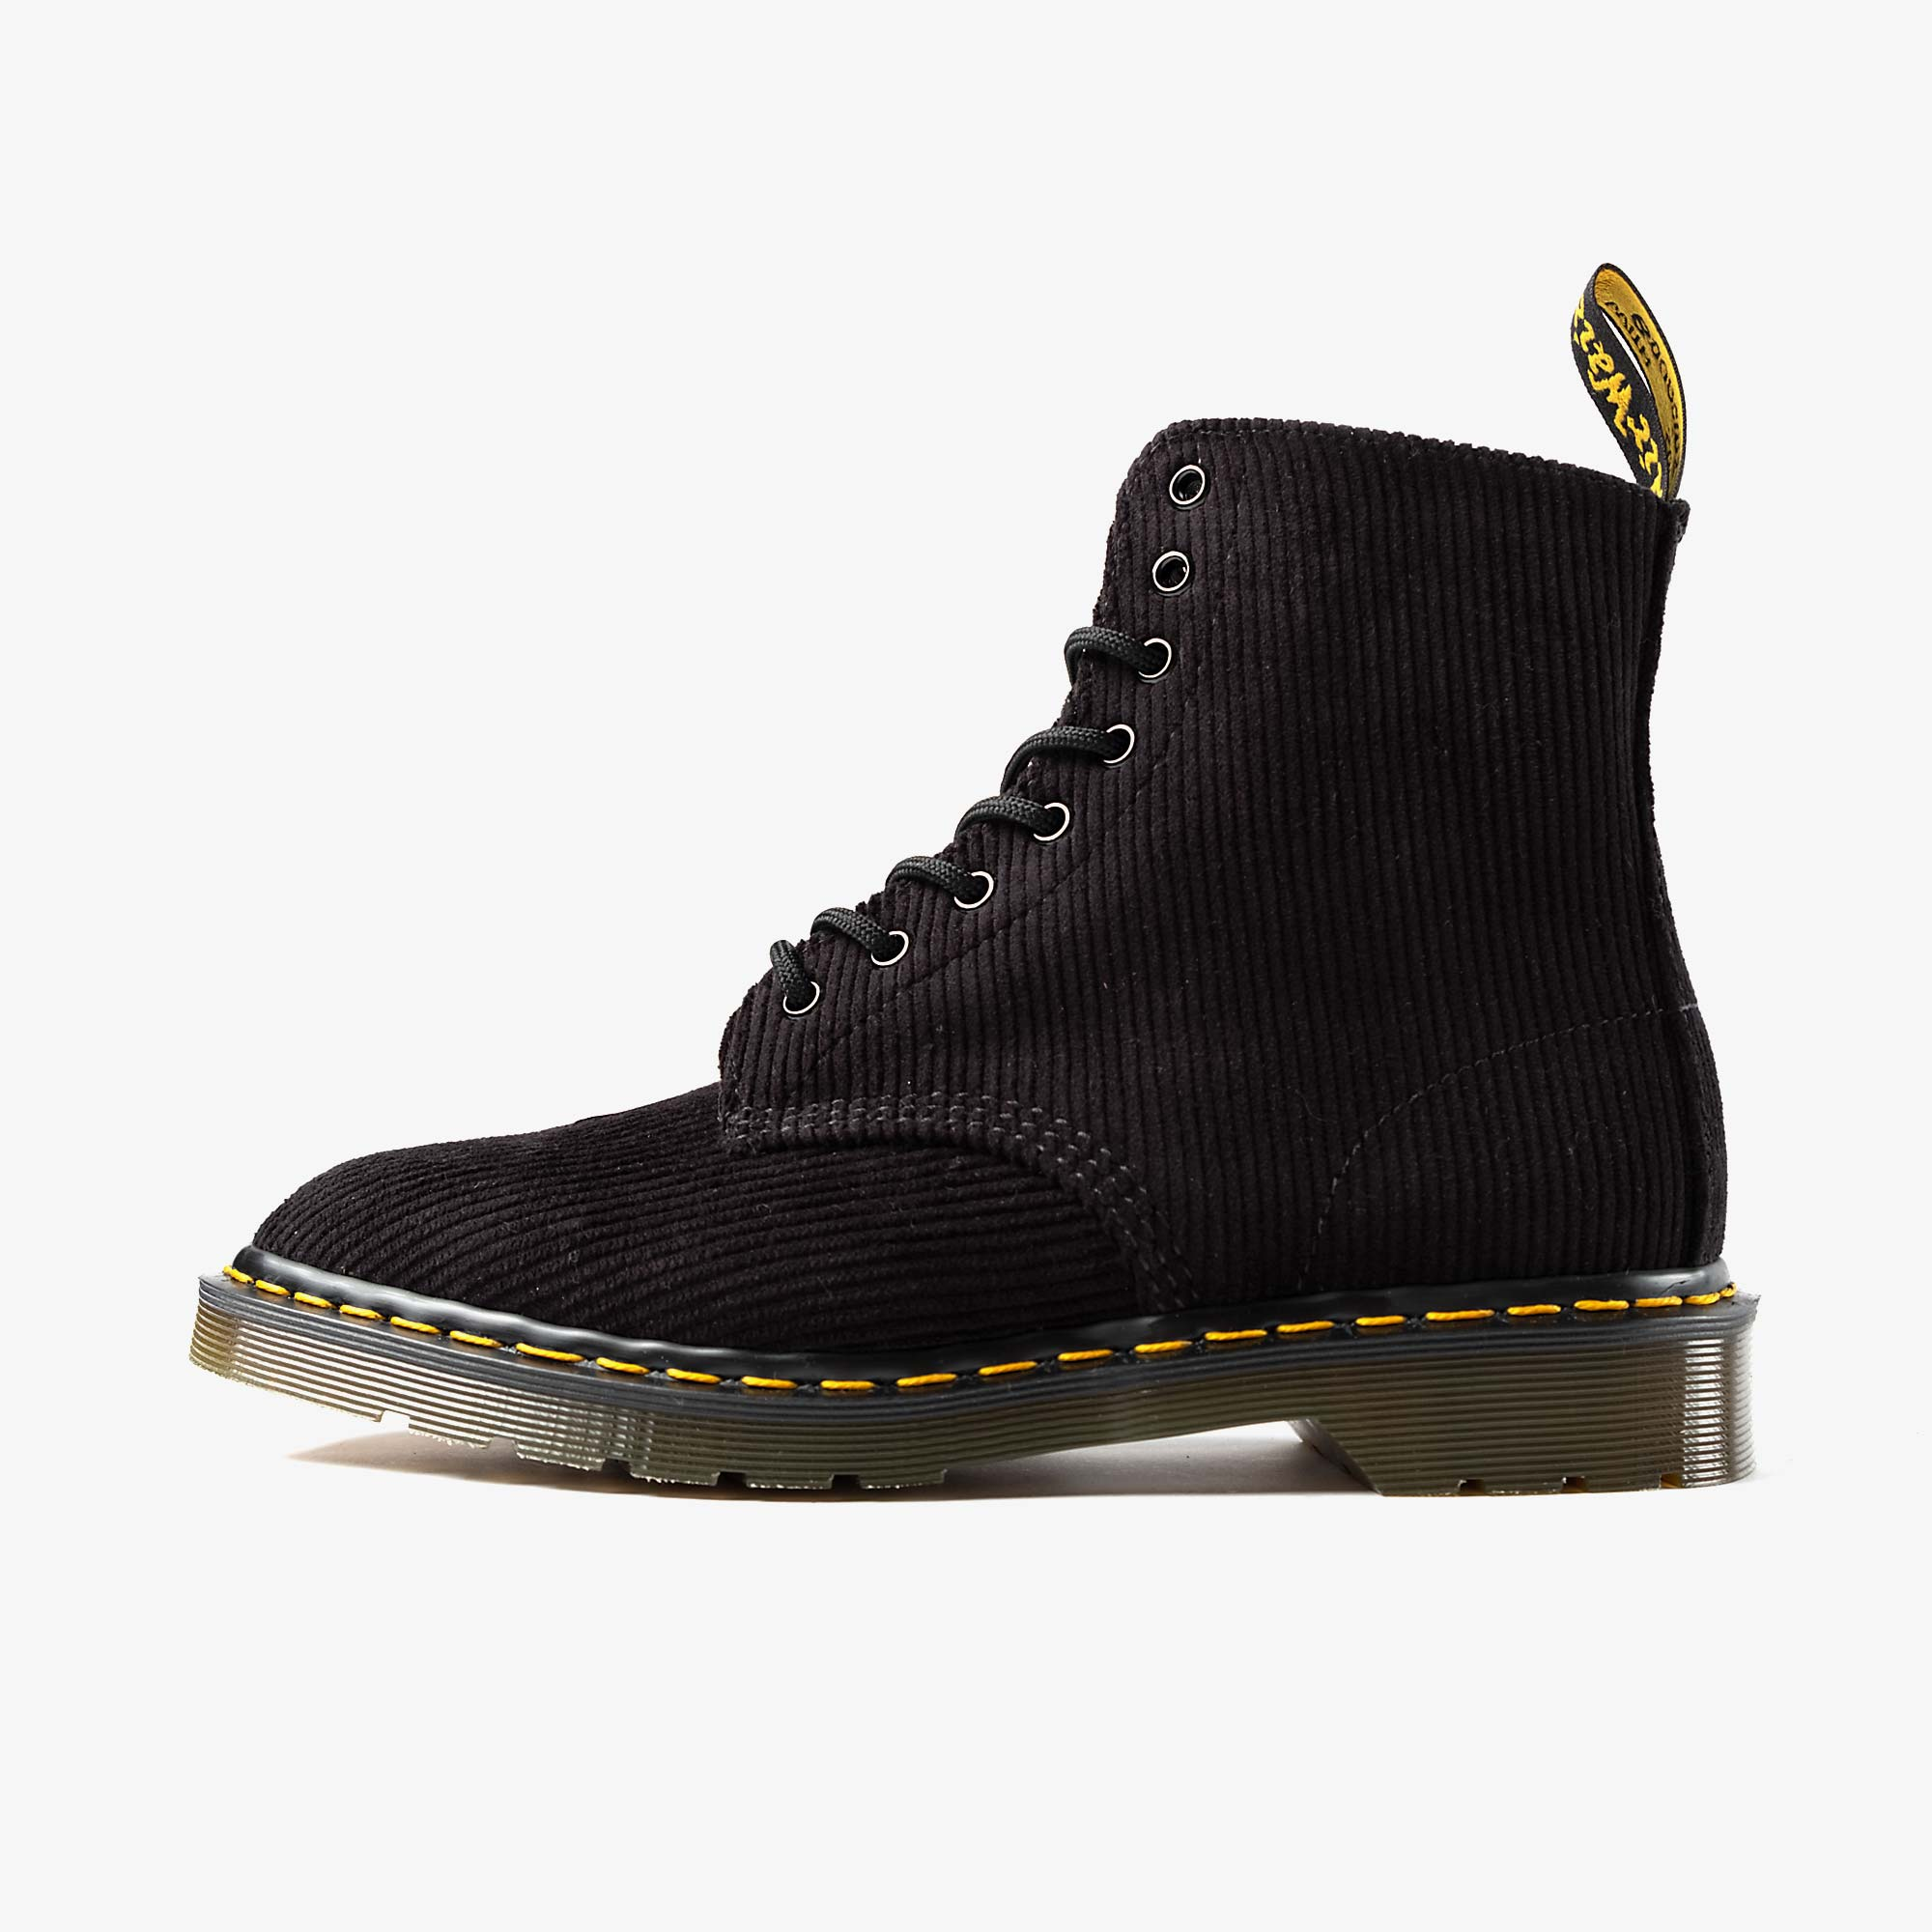 Undercover Undercover x Dr. Martens 1460 Corduroy - Black 4